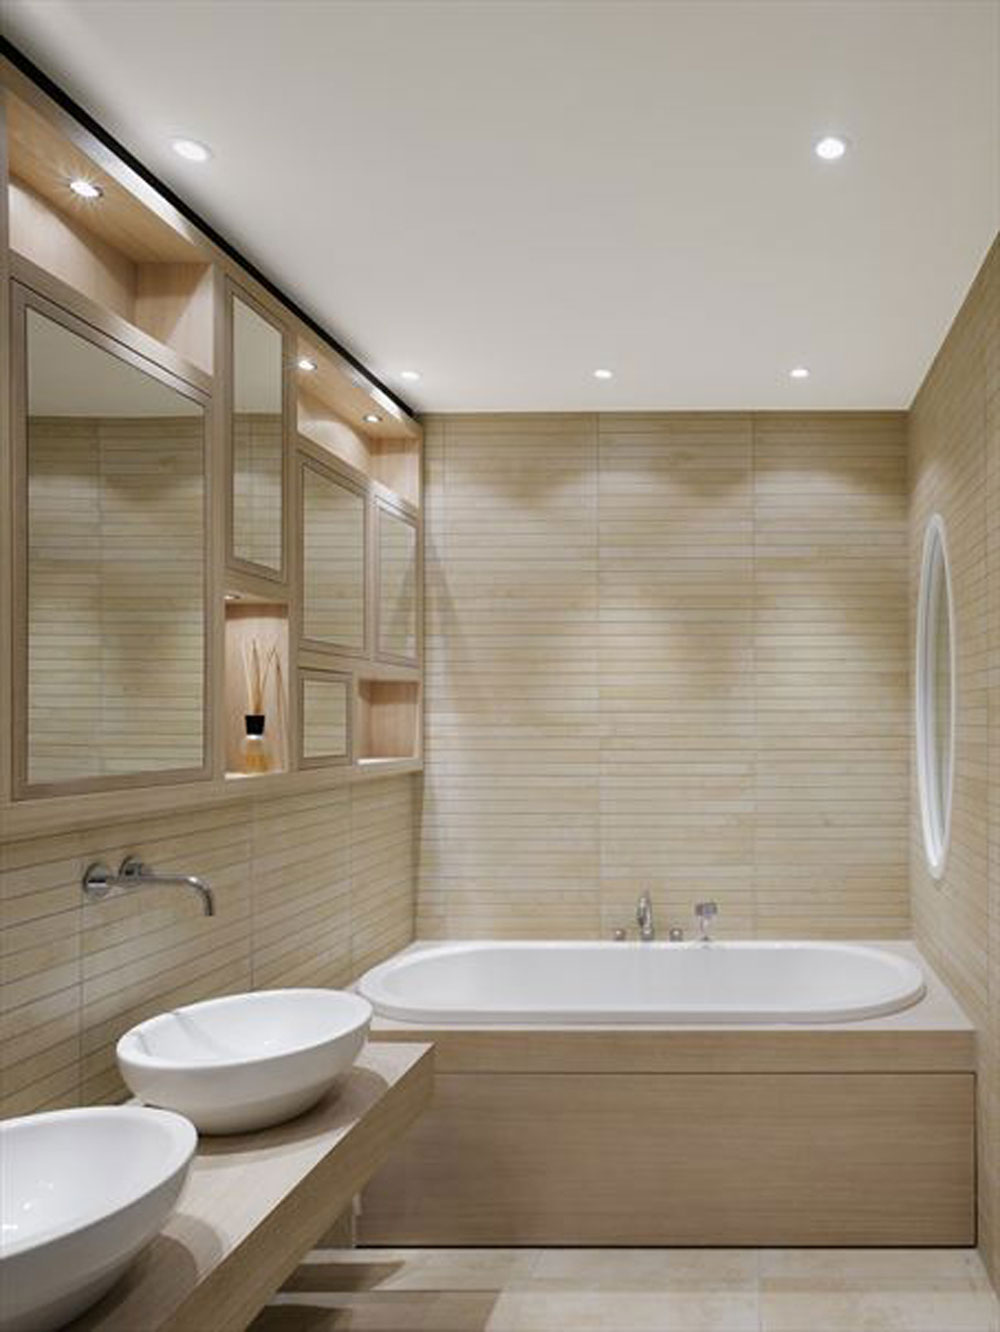 Designing-a-small-bathroom-ideas-and-tips-11 Designing-a-small-bathroom - ideas and tips